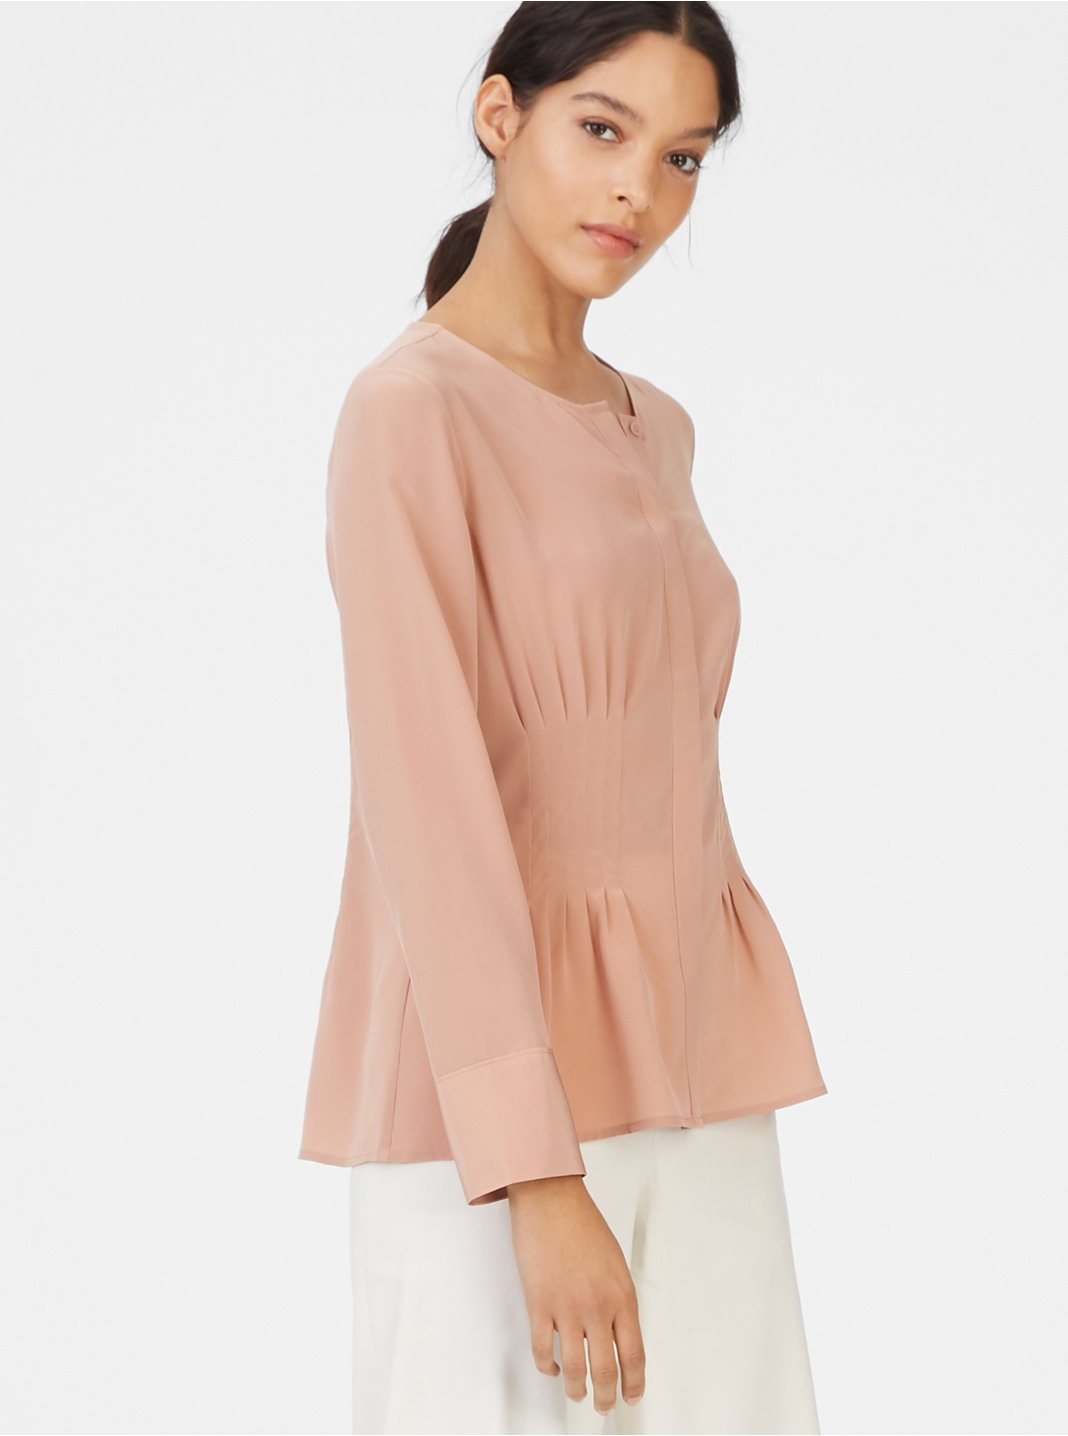 Mabetta Silk Shirt